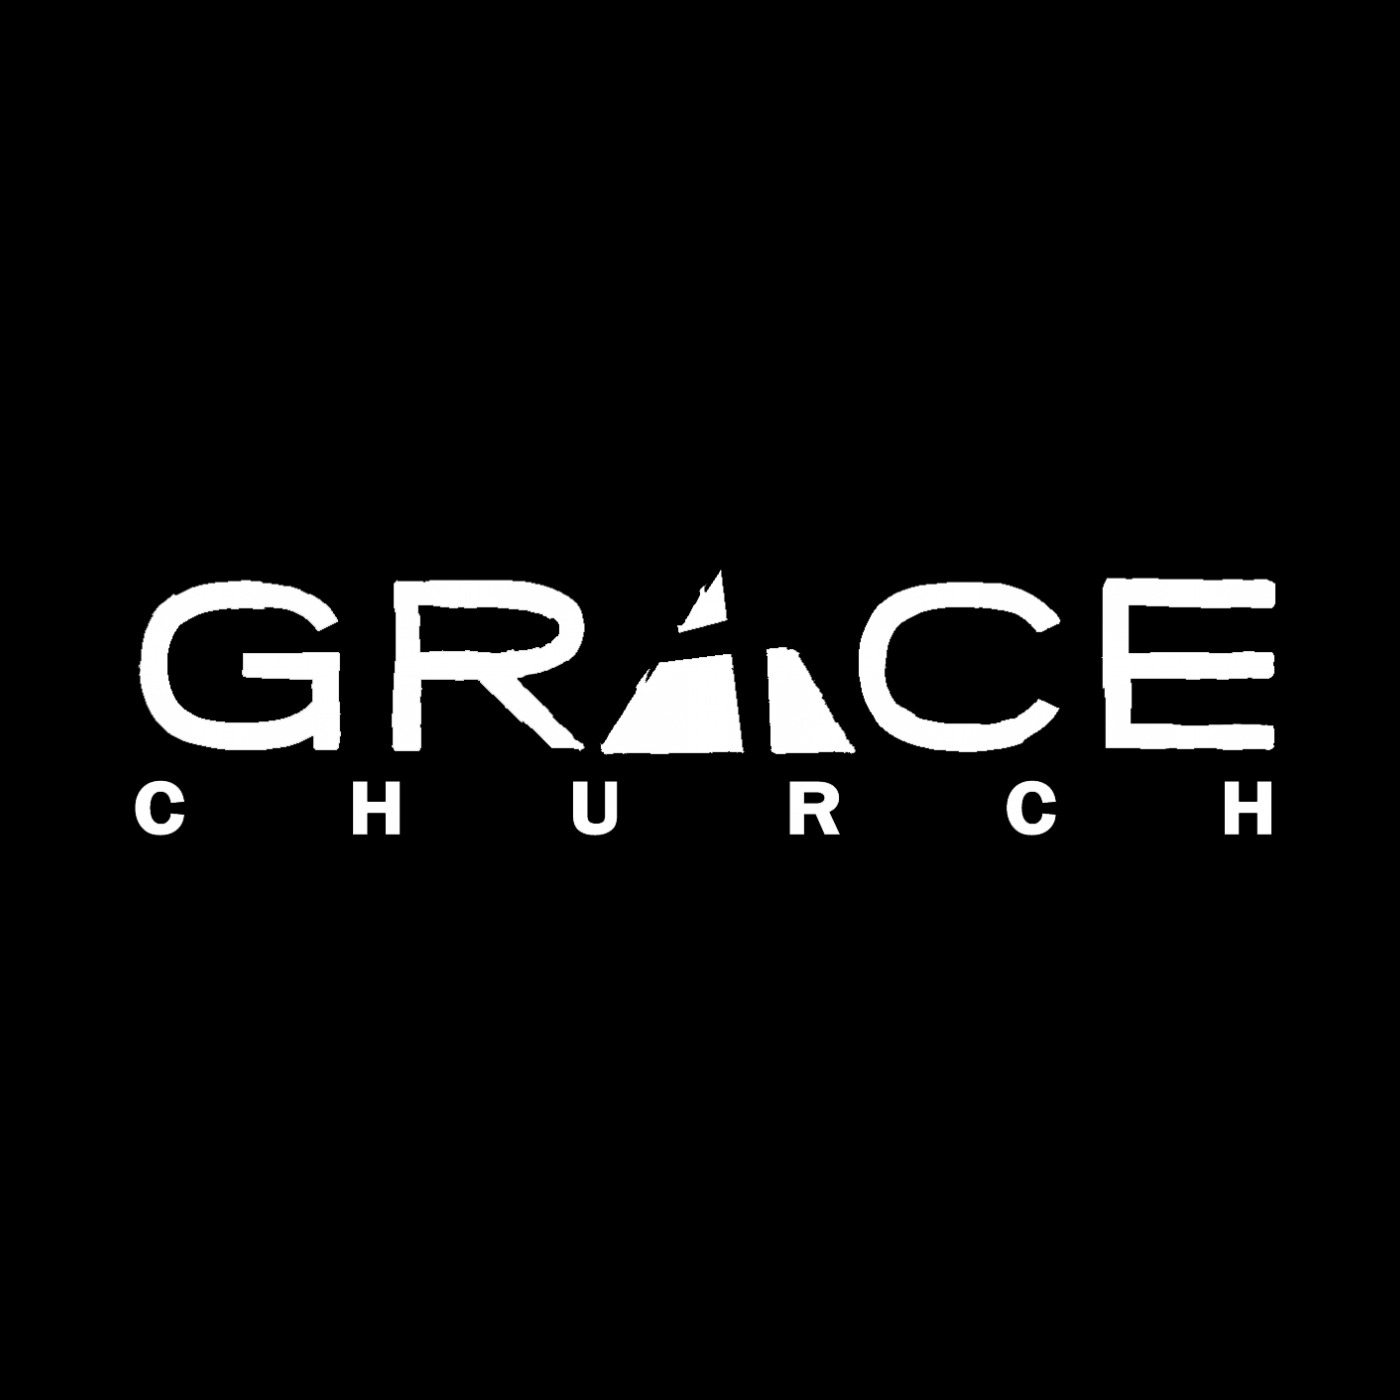 Grace Church of La Verne Sermons